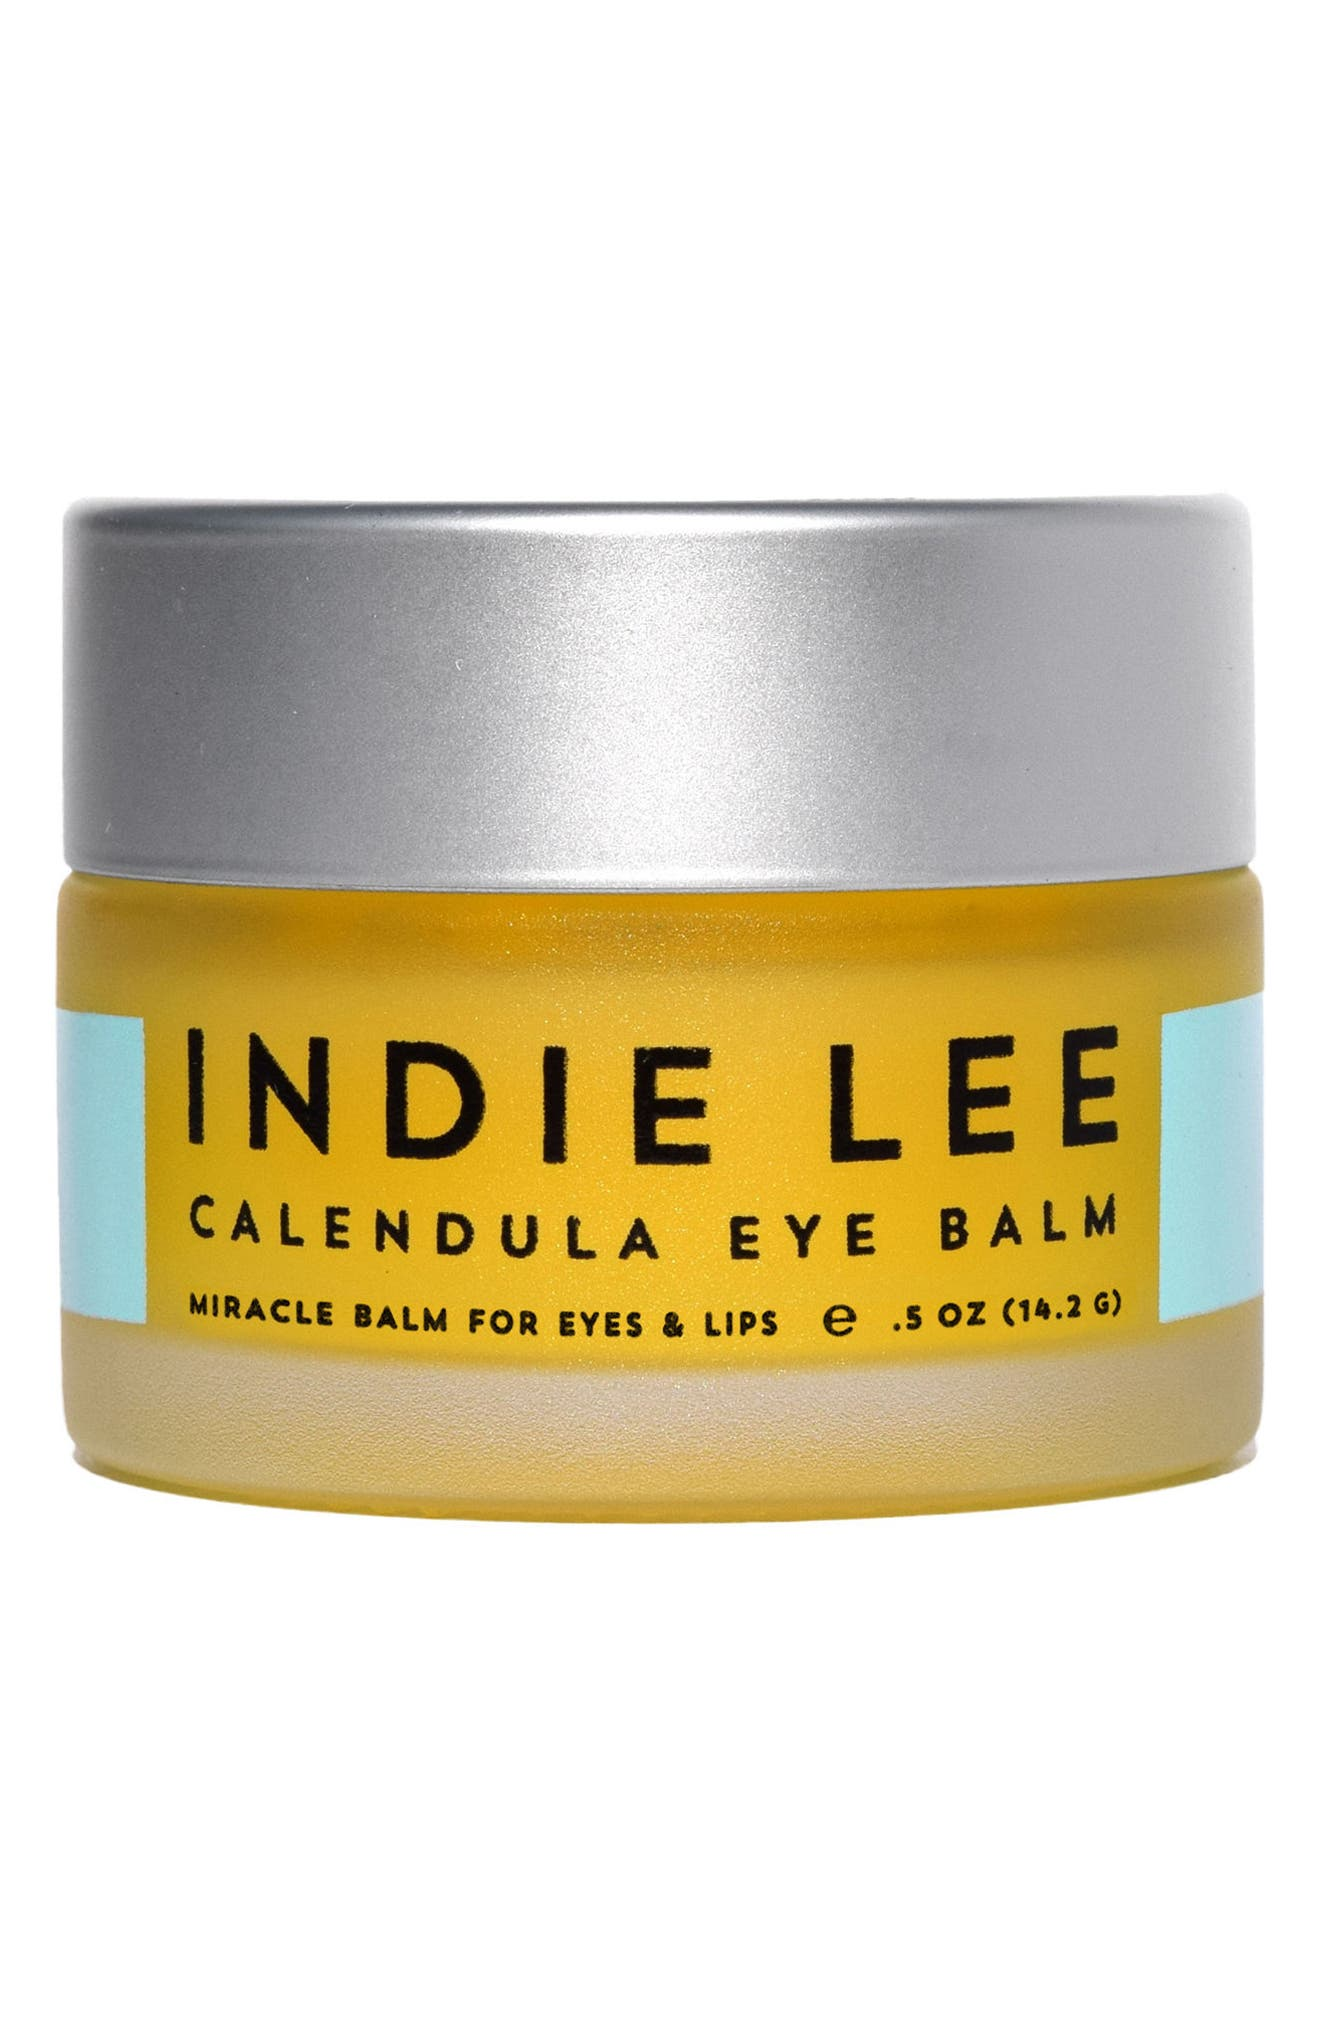 Calendula Eye Balm,                             Main thumbnail 1, color,                             000